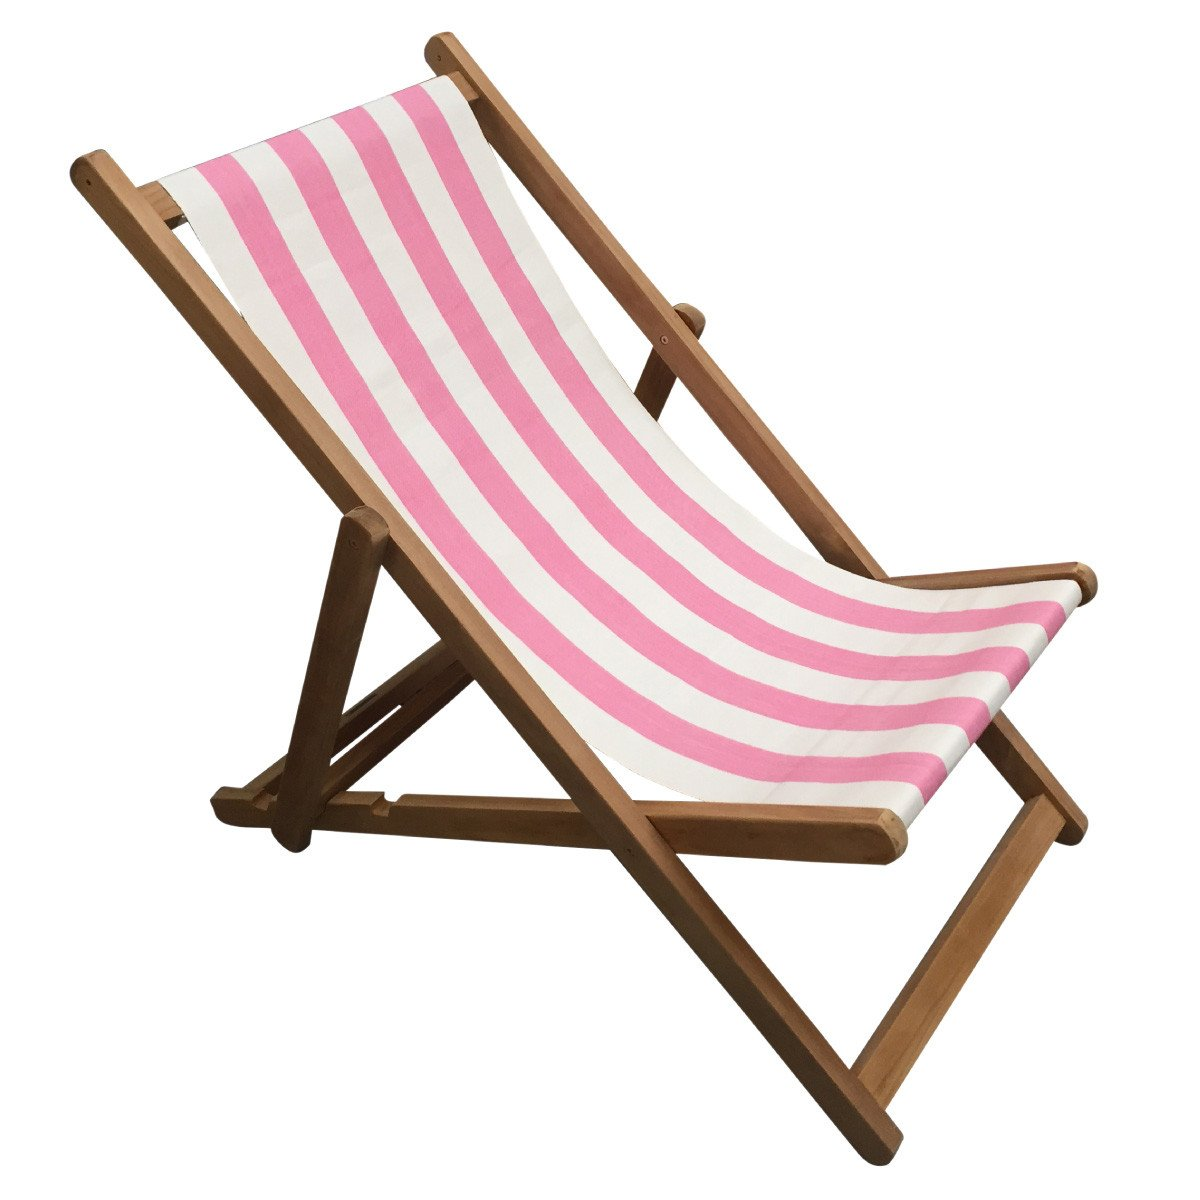 Discus Premium Teak Hardwood Striped Deckchair - Deckchair Stripes